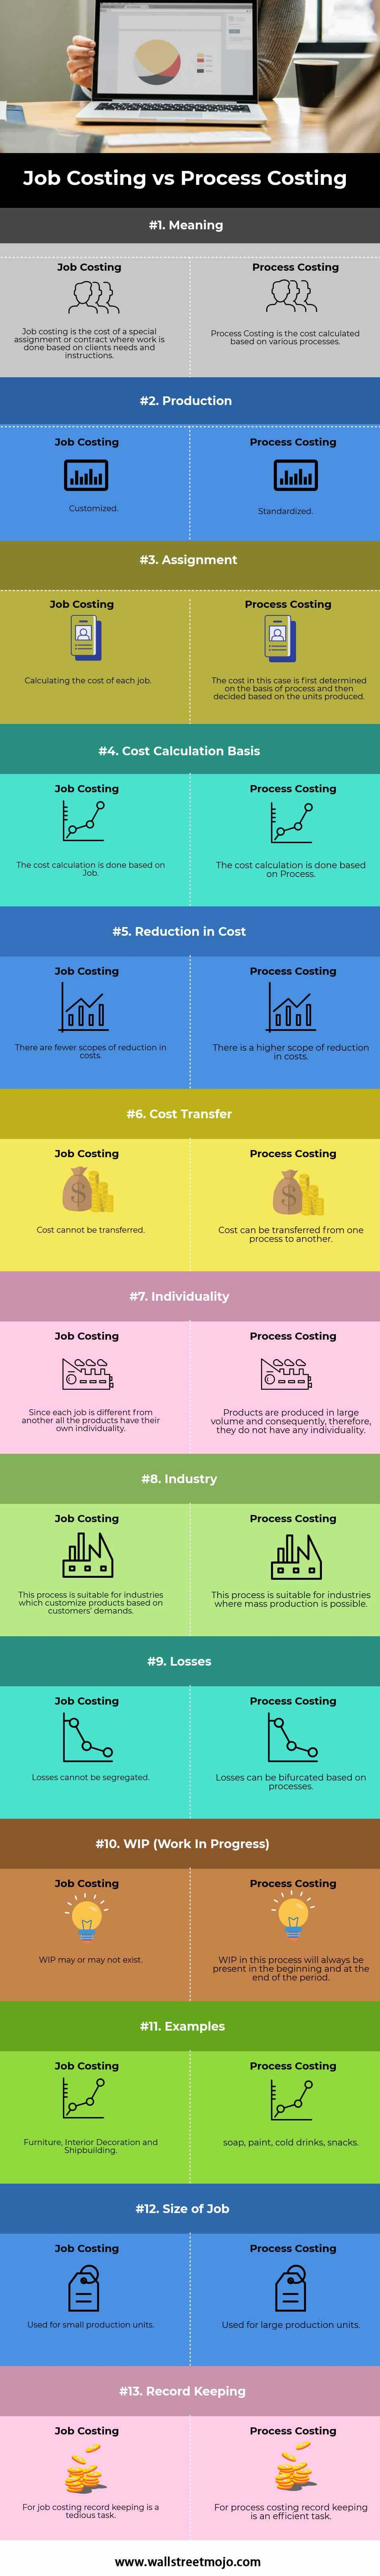 Job-Costing-vs-Process-Costing-info